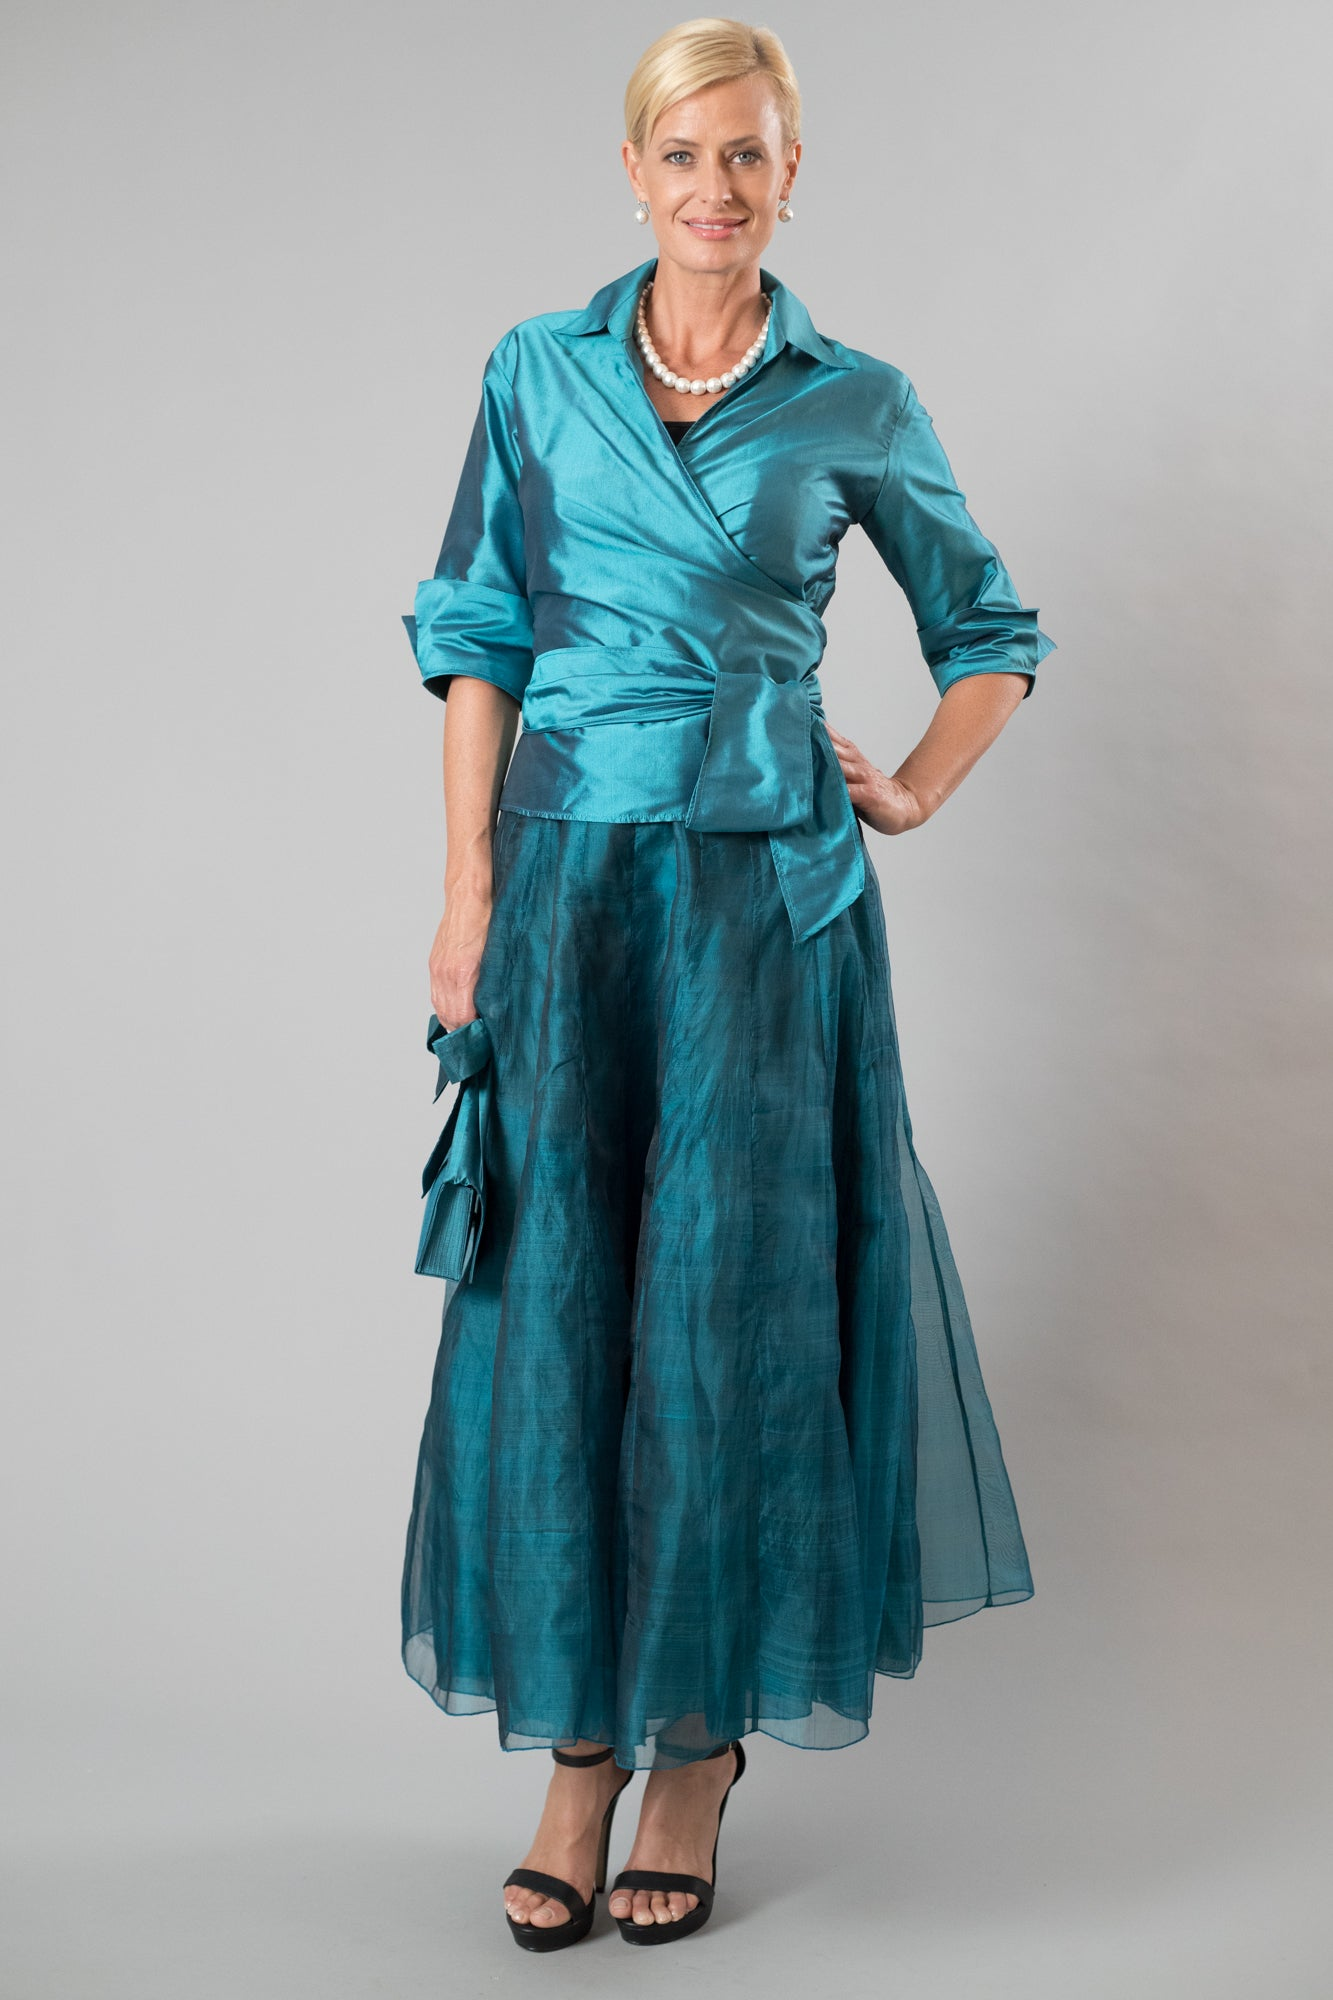 54de2370346 Teal two piece outfit for the modern and elegant mother of the bride  groom